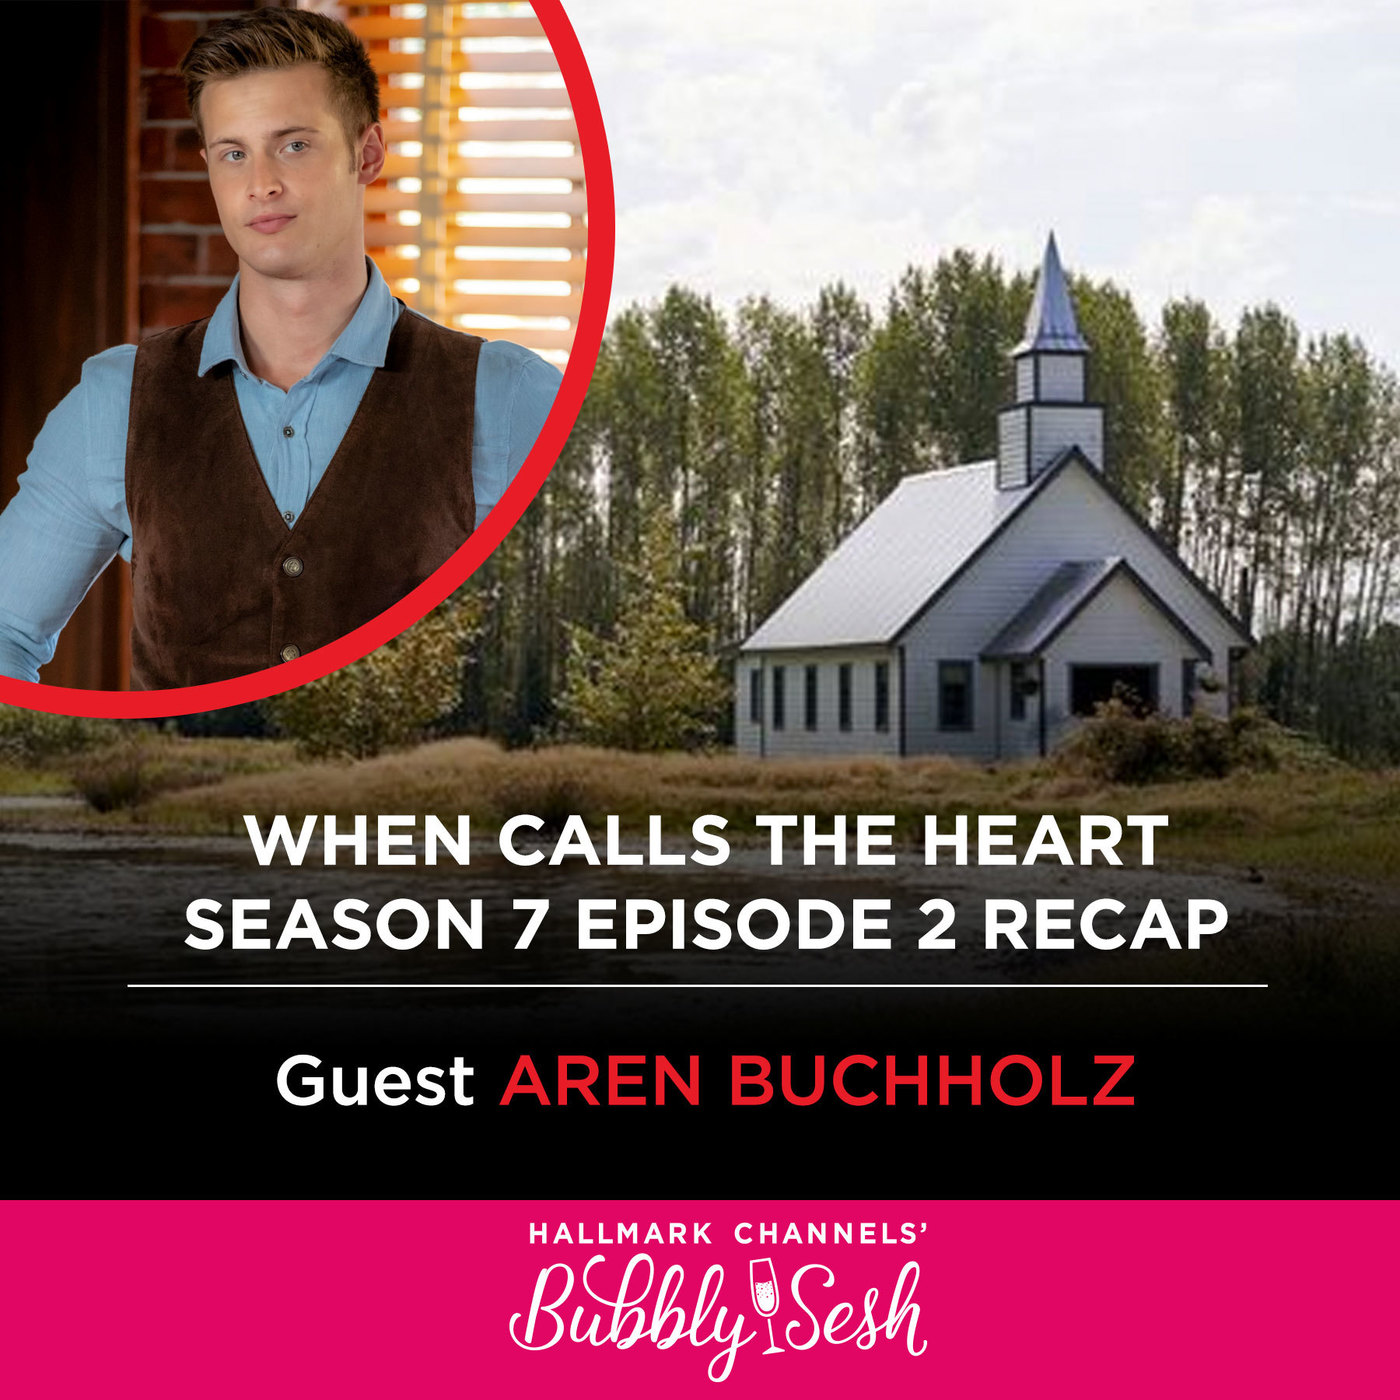 When Calls The Heart Season 7, Episode 2 Recap with Guest Aren Buchholz, Actor